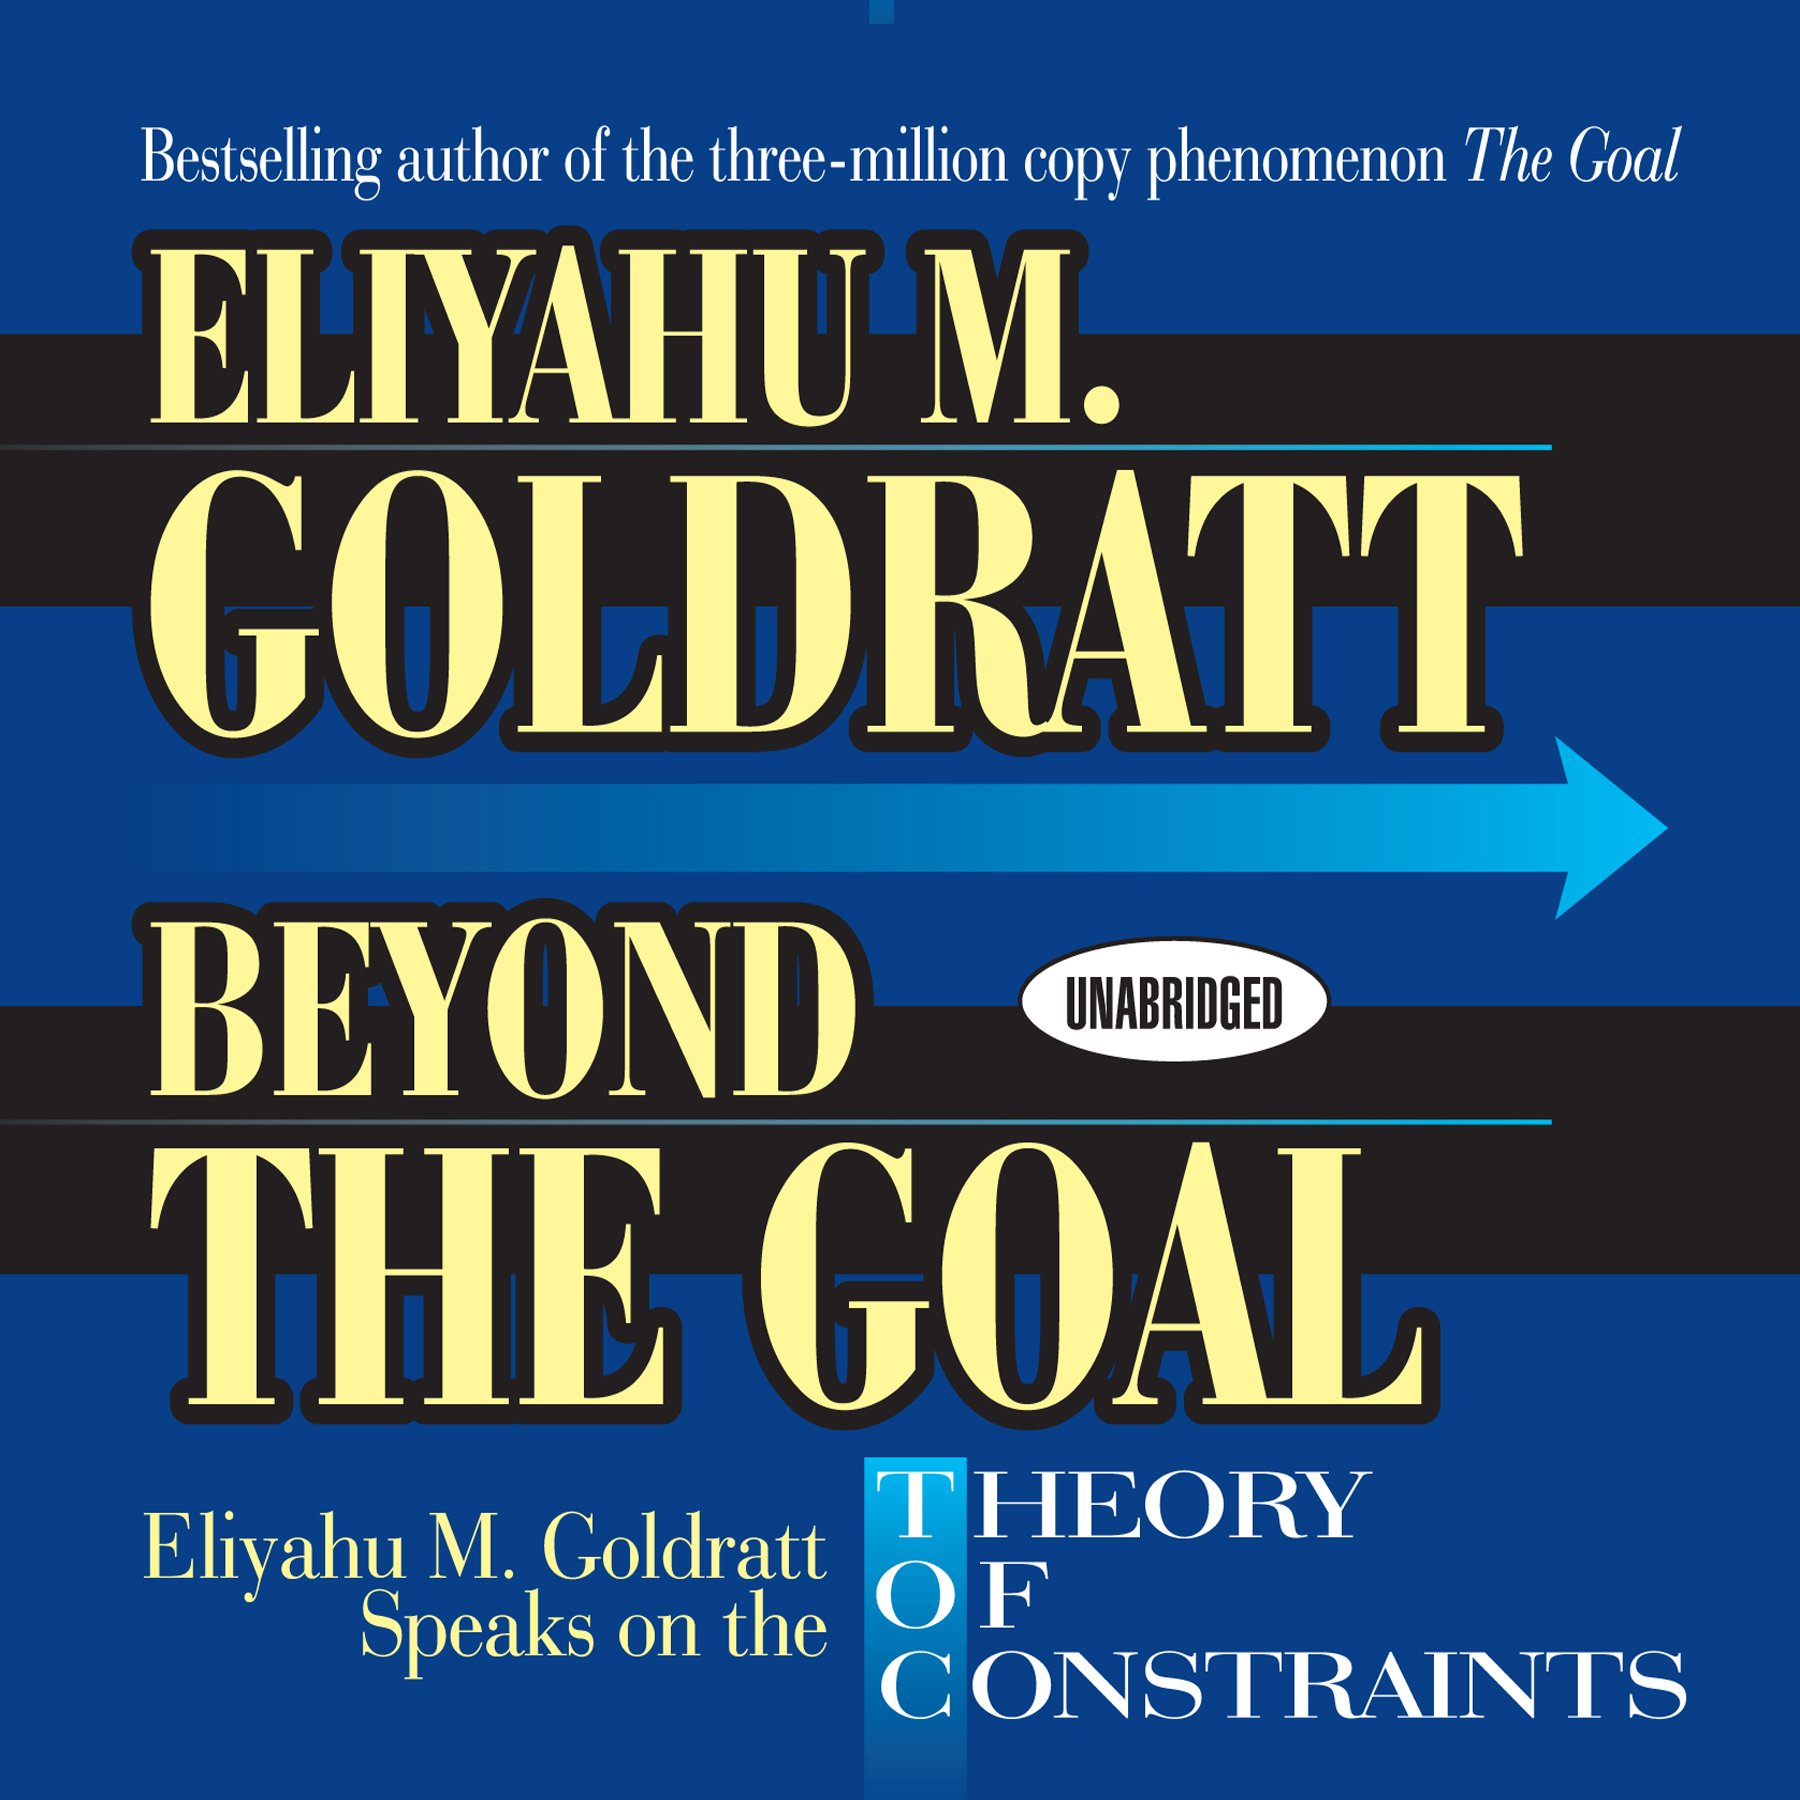 Beyond the Goal: Theory of Constraints - Eliyahu M. Goldratt - quotes, rating, reviews, where to buy